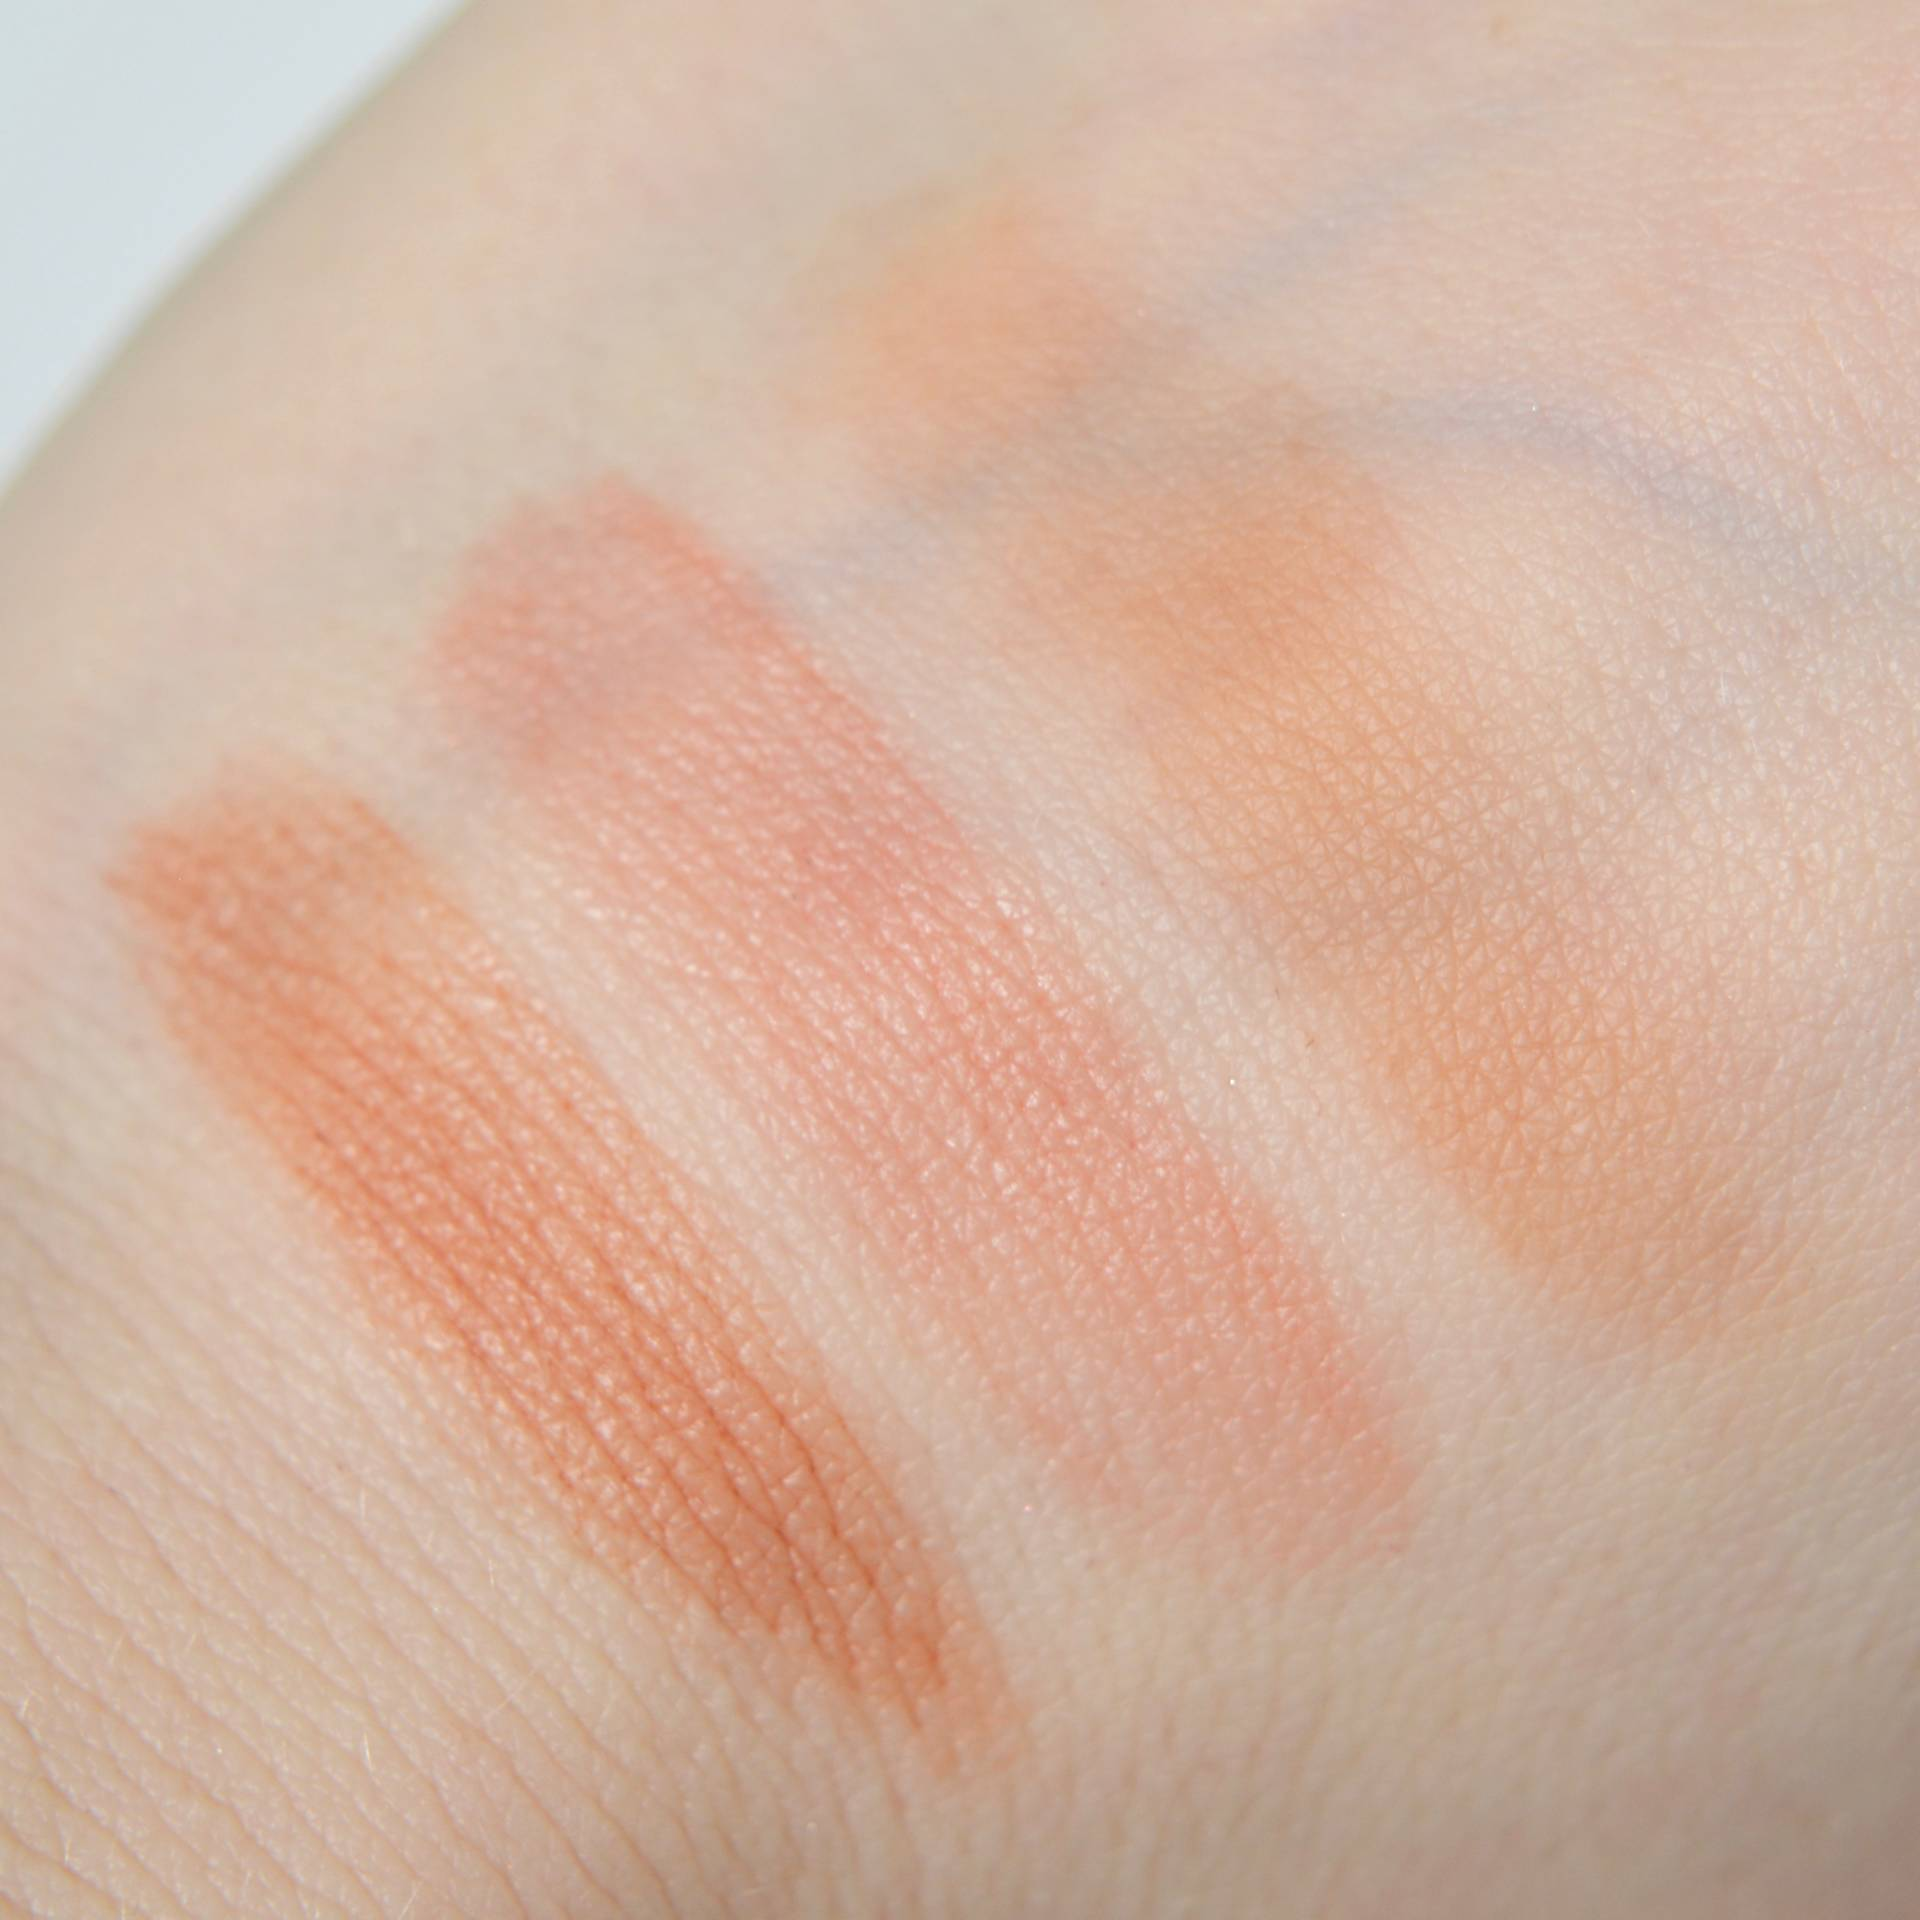 Rosie by Autograph Cream Blusher and Bronzer swatches